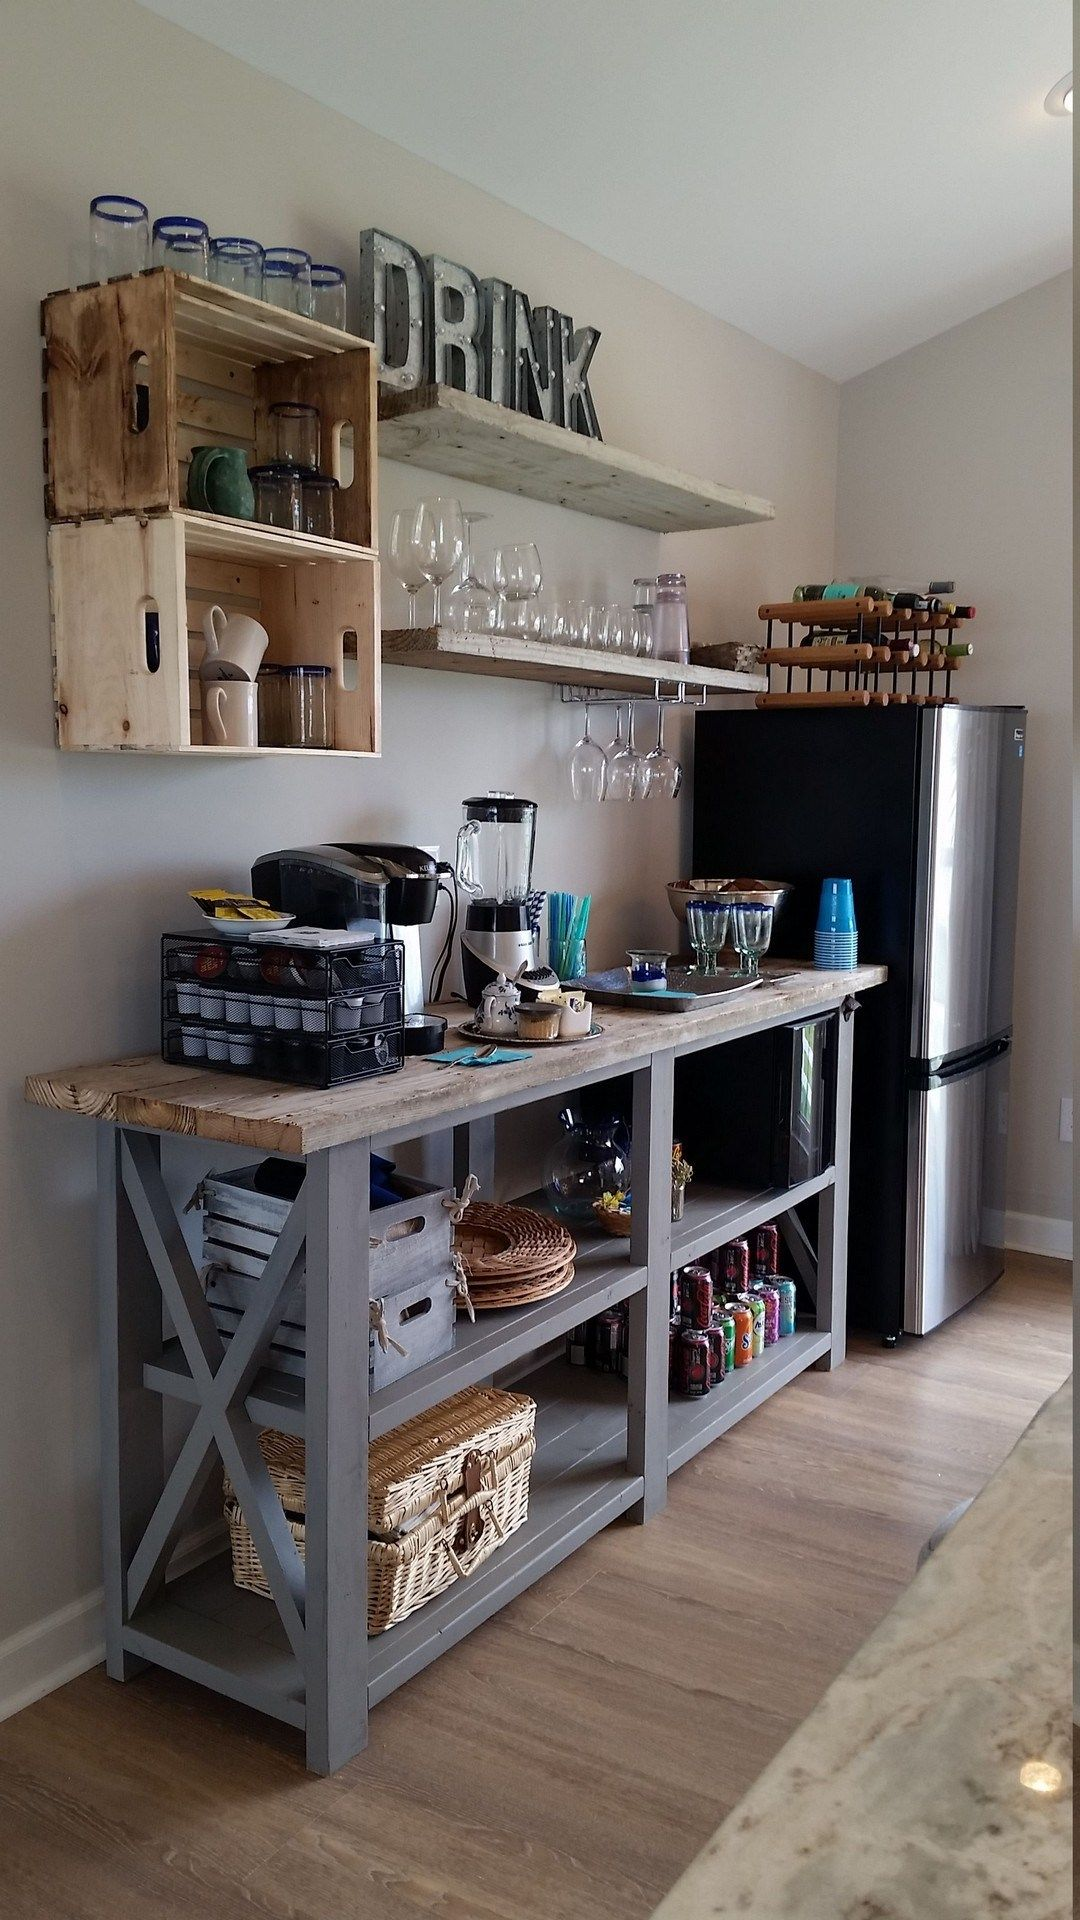 40 DIY Kitchen Ideas For Small Spaces (1) (With images